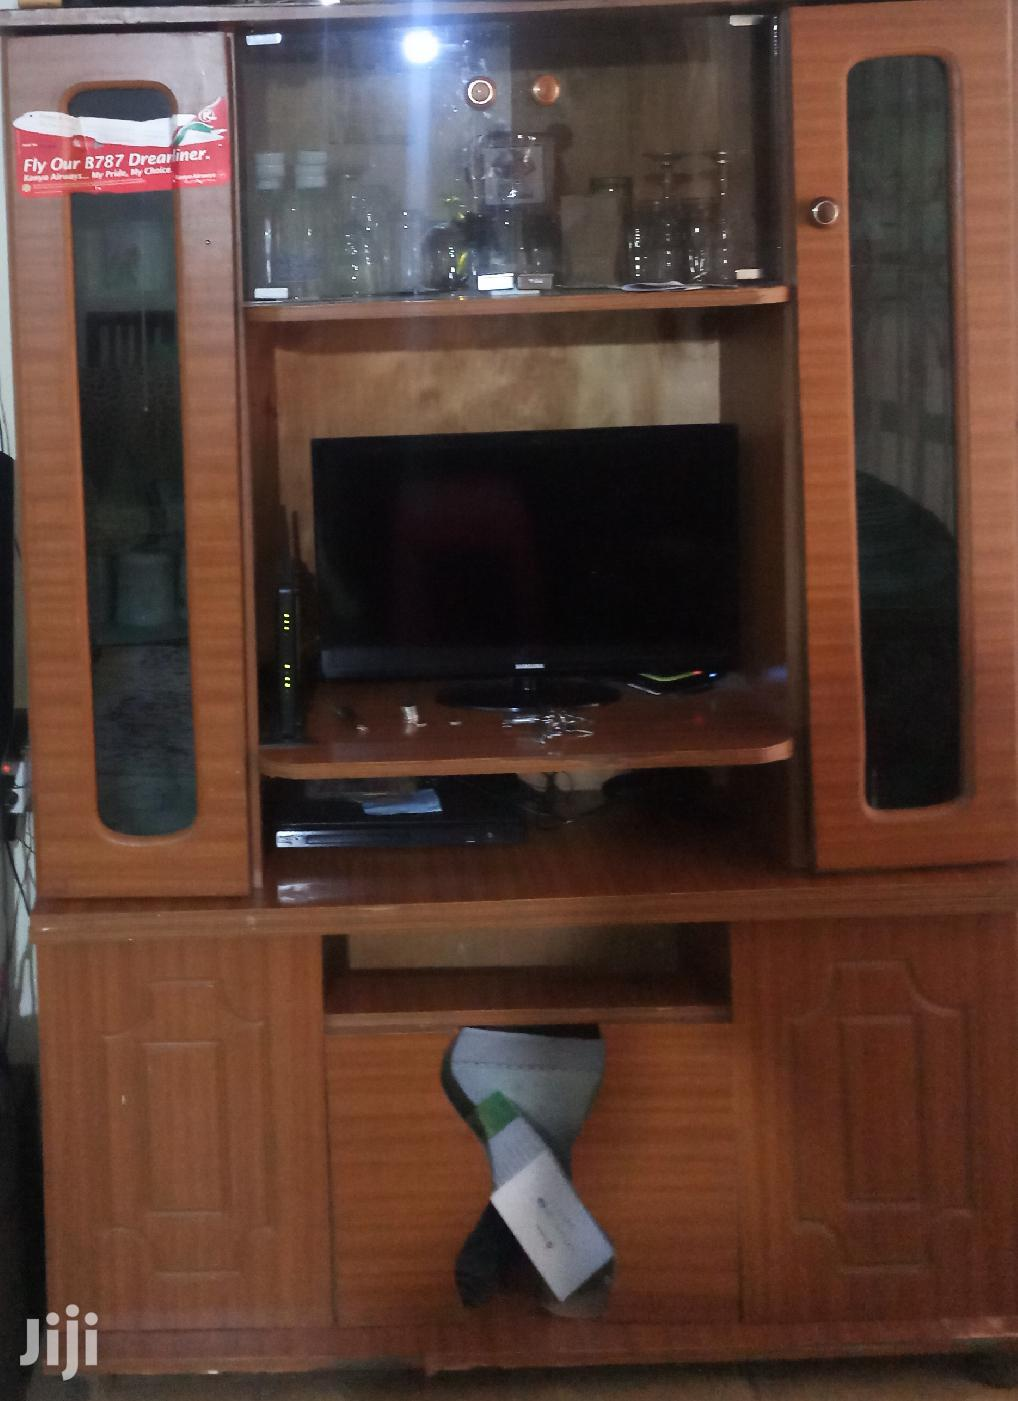 Wall Unit For Sale | Furniture for sale in Umoja I, Nairobi, Kenya